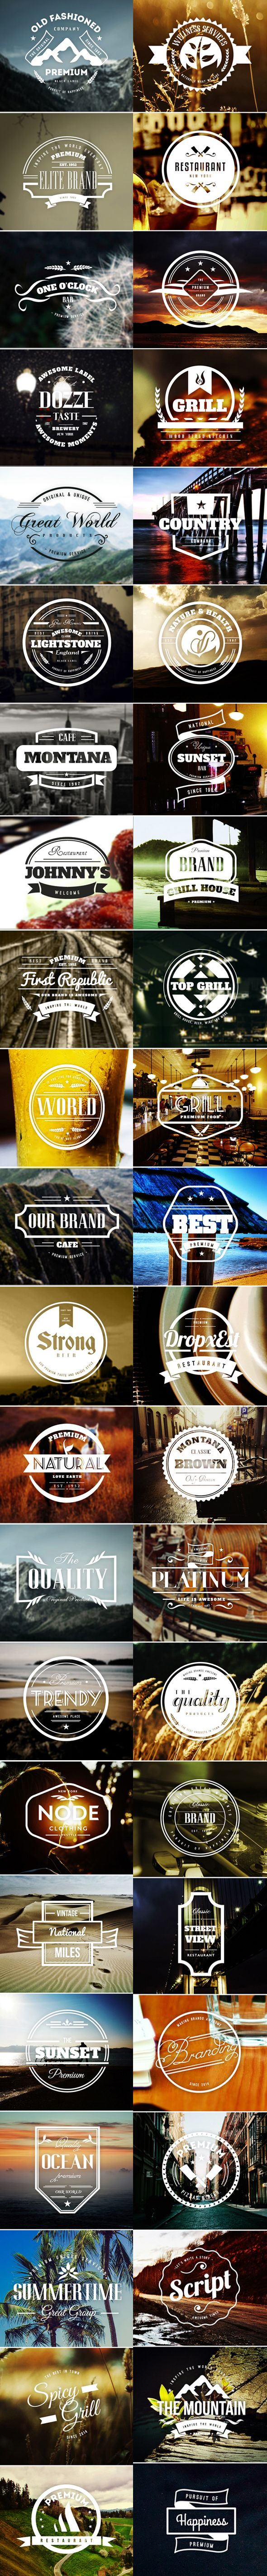 45 Retro Vintage Labels and Badges that you can use on Logos with emblem style, on beer labels, restaurants, coffee shops, bar and other places. Also you can use them on modern labels with a touch of Vintage style for your Website, Business, Stickers, T-s…